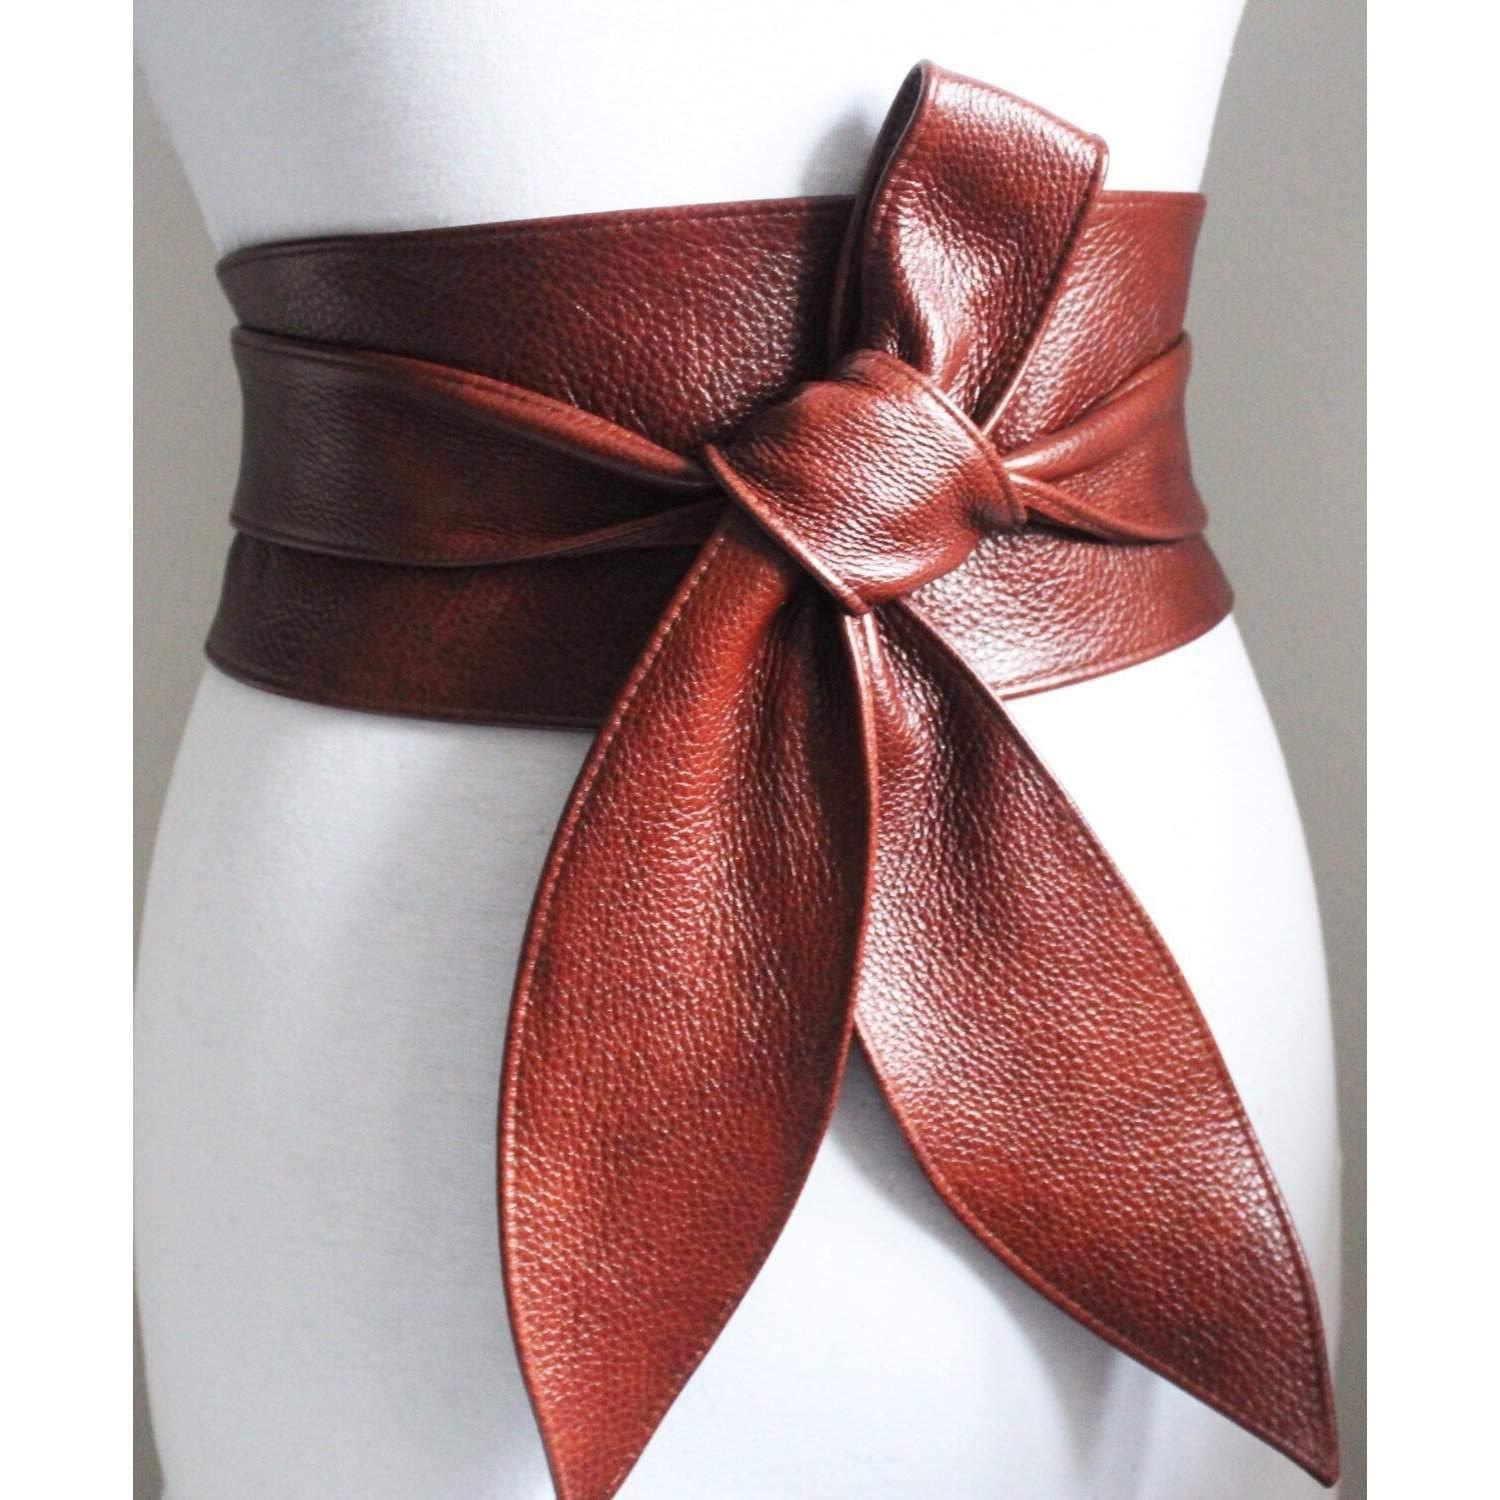 Rich Brown Leather Obi Belt tulip tie - loveyaayaa